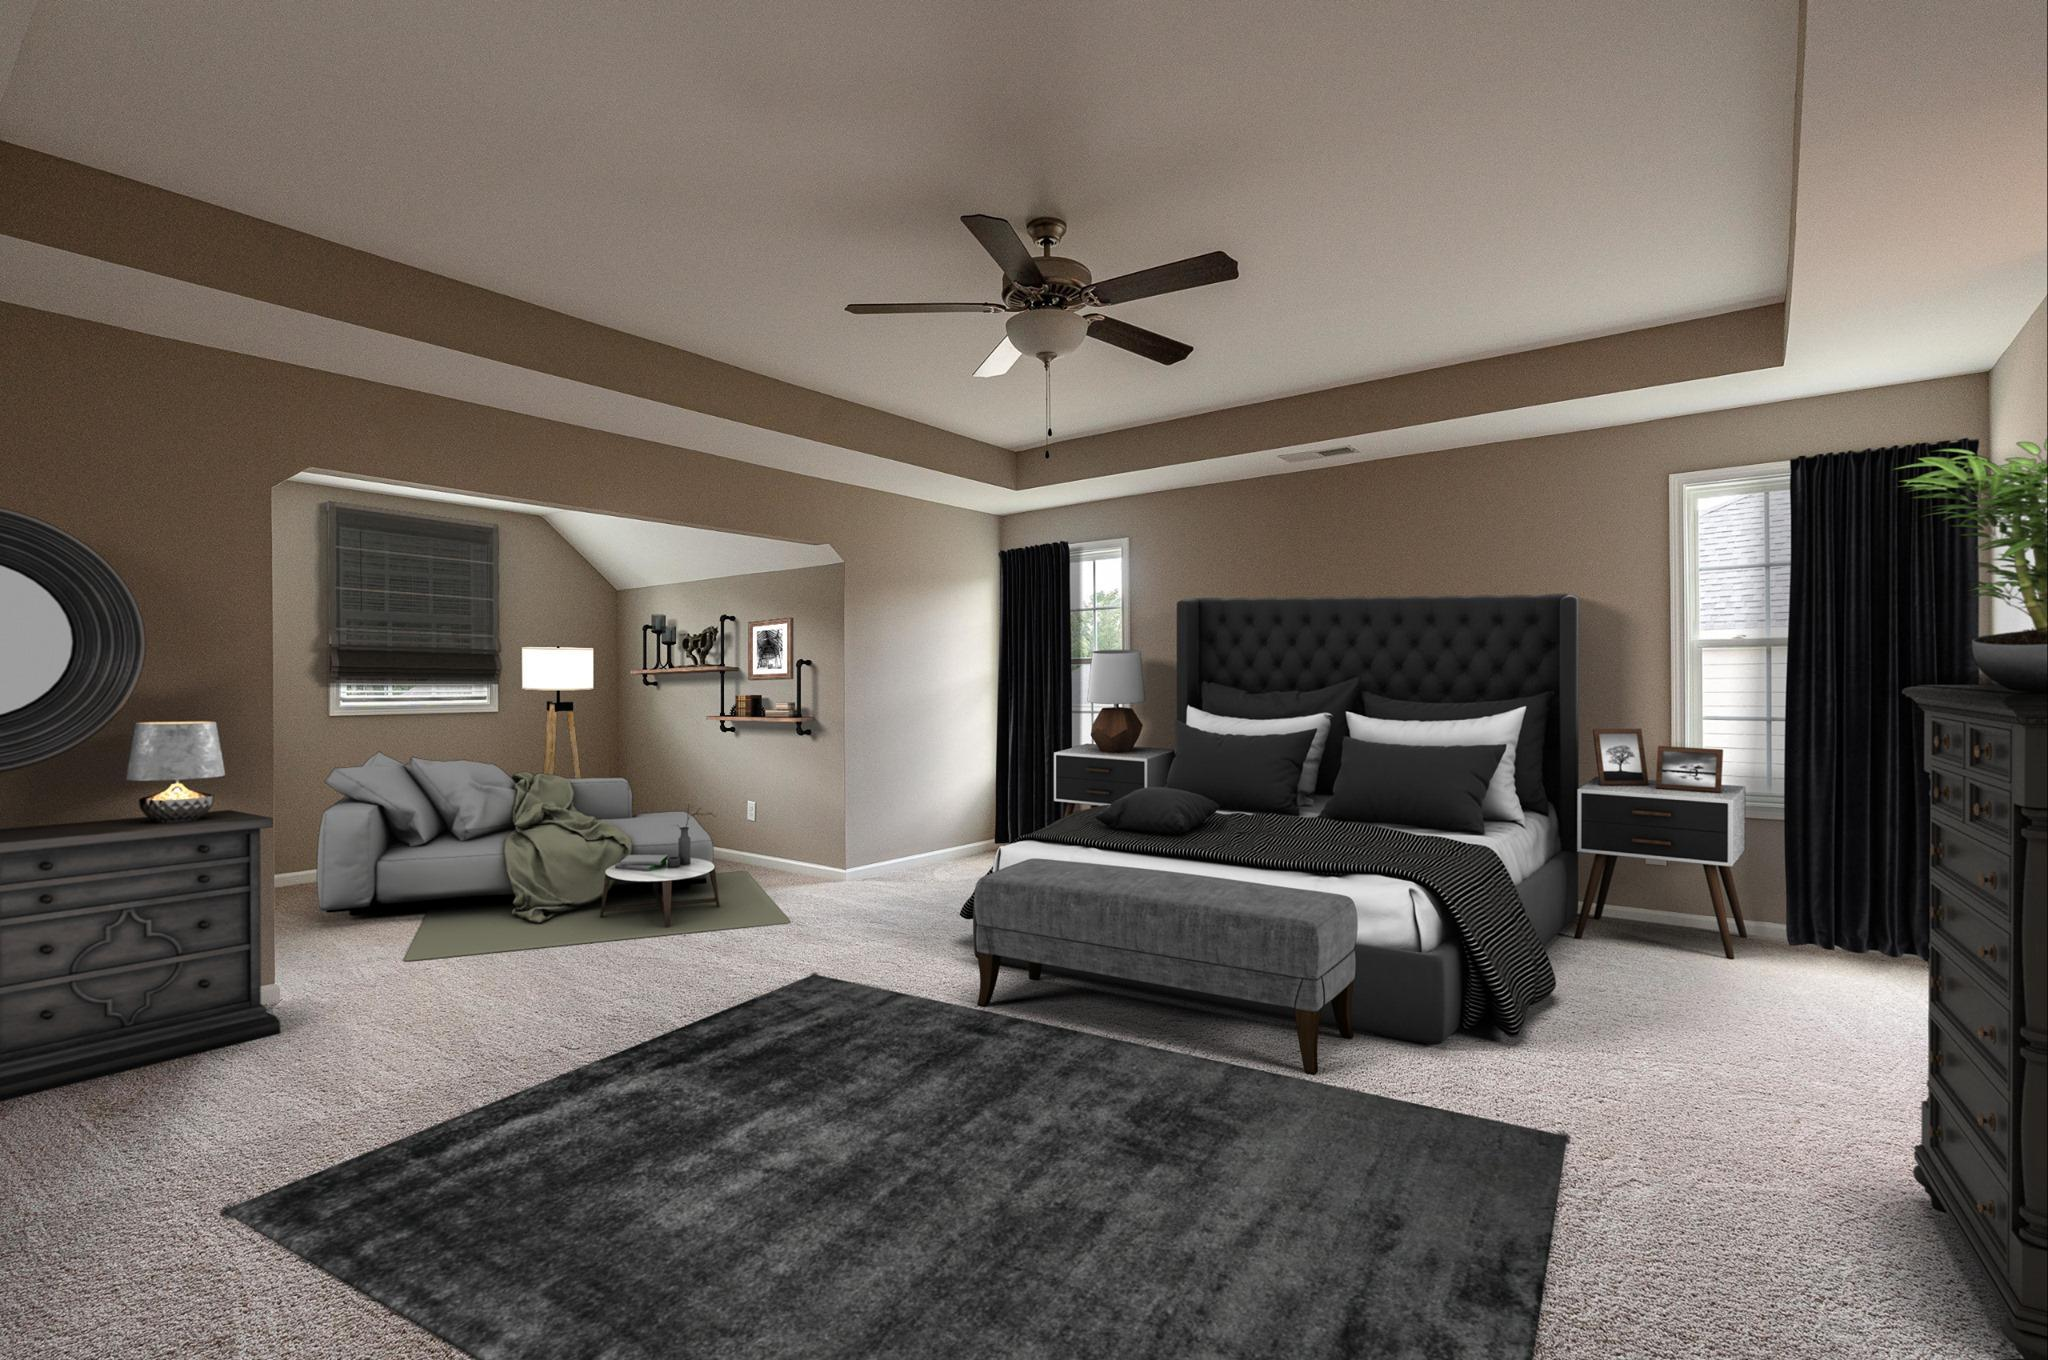 Bedroom featured in the Westover By Hughston Homes in Augusta, GA